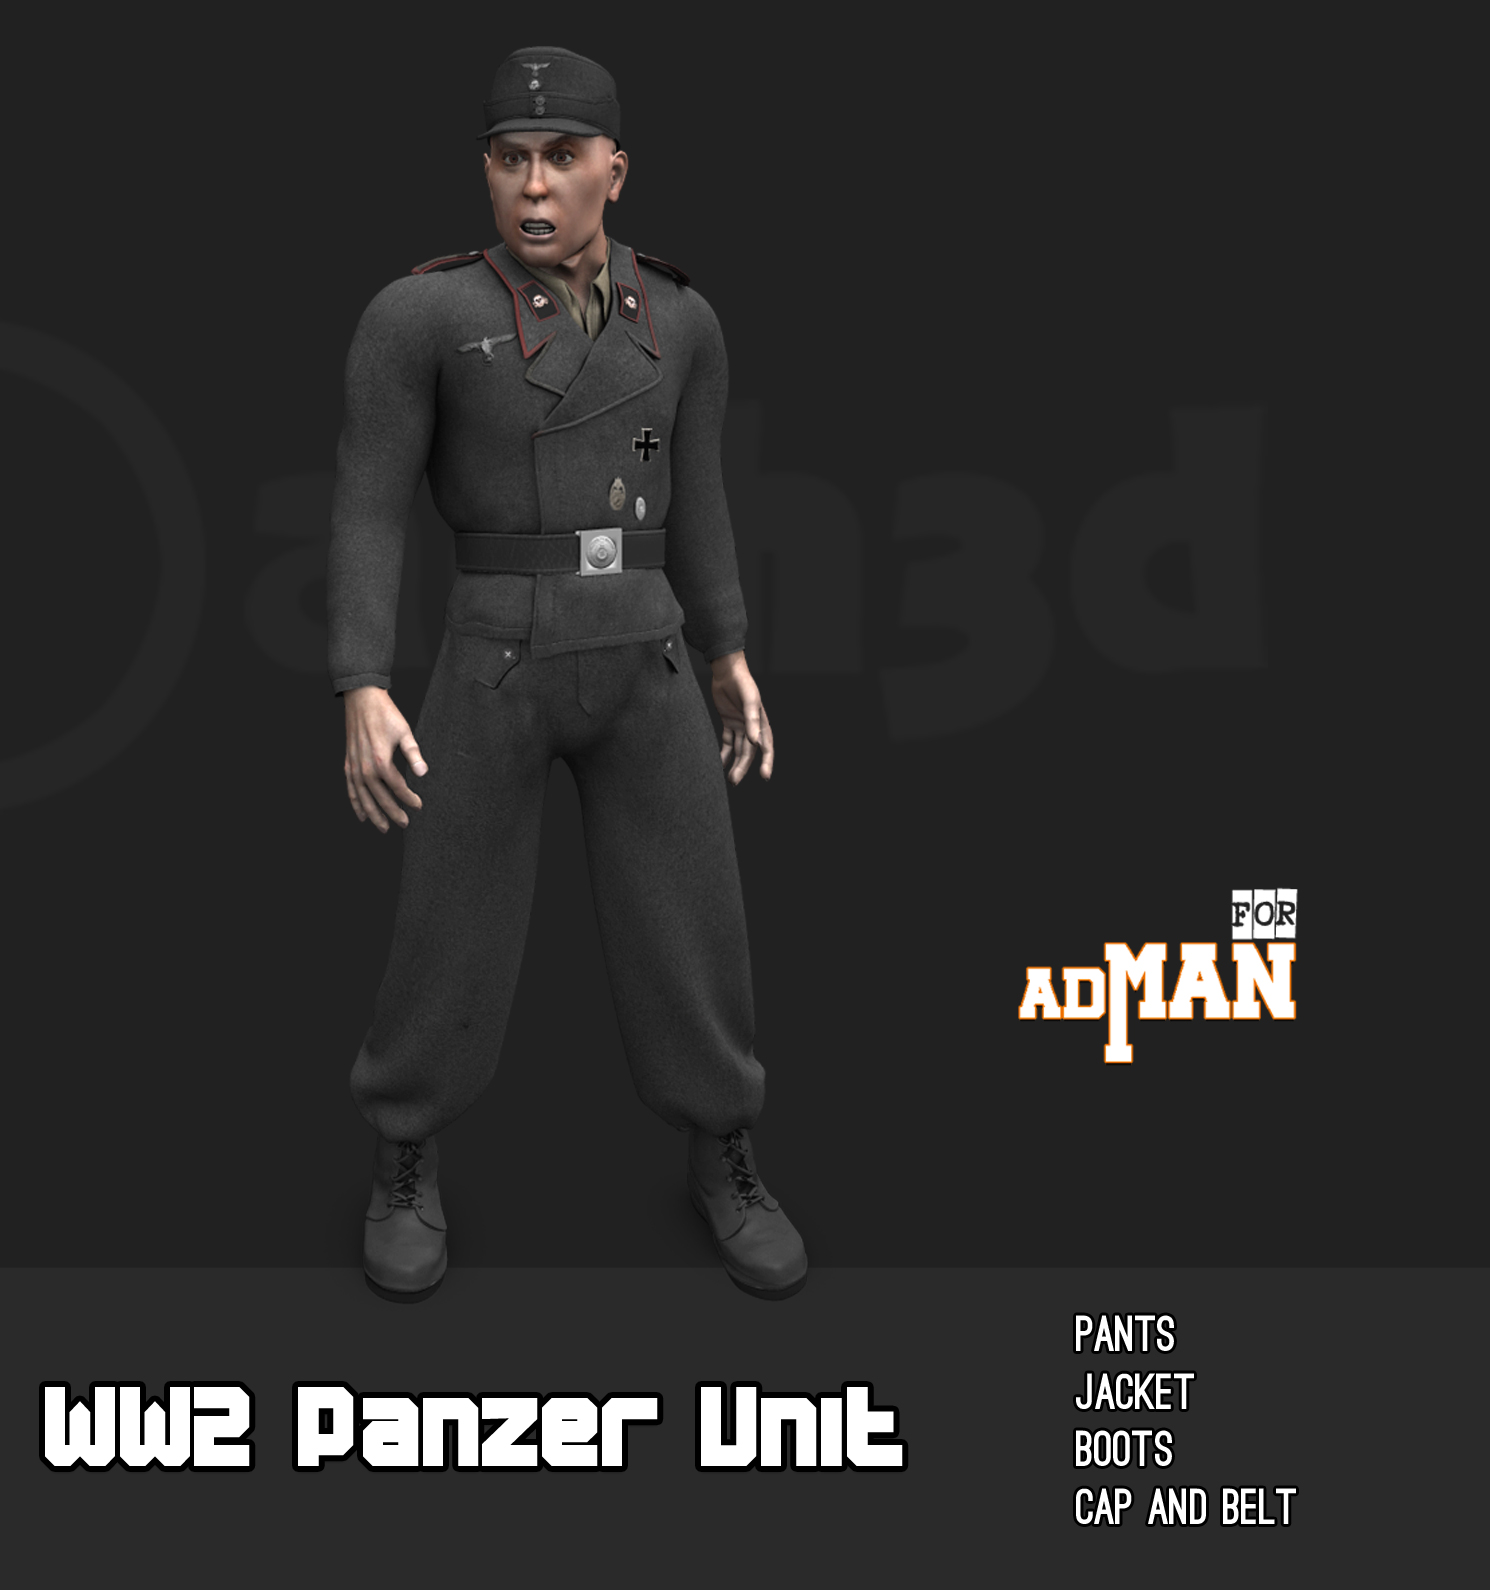 WW2 Panzer Unit